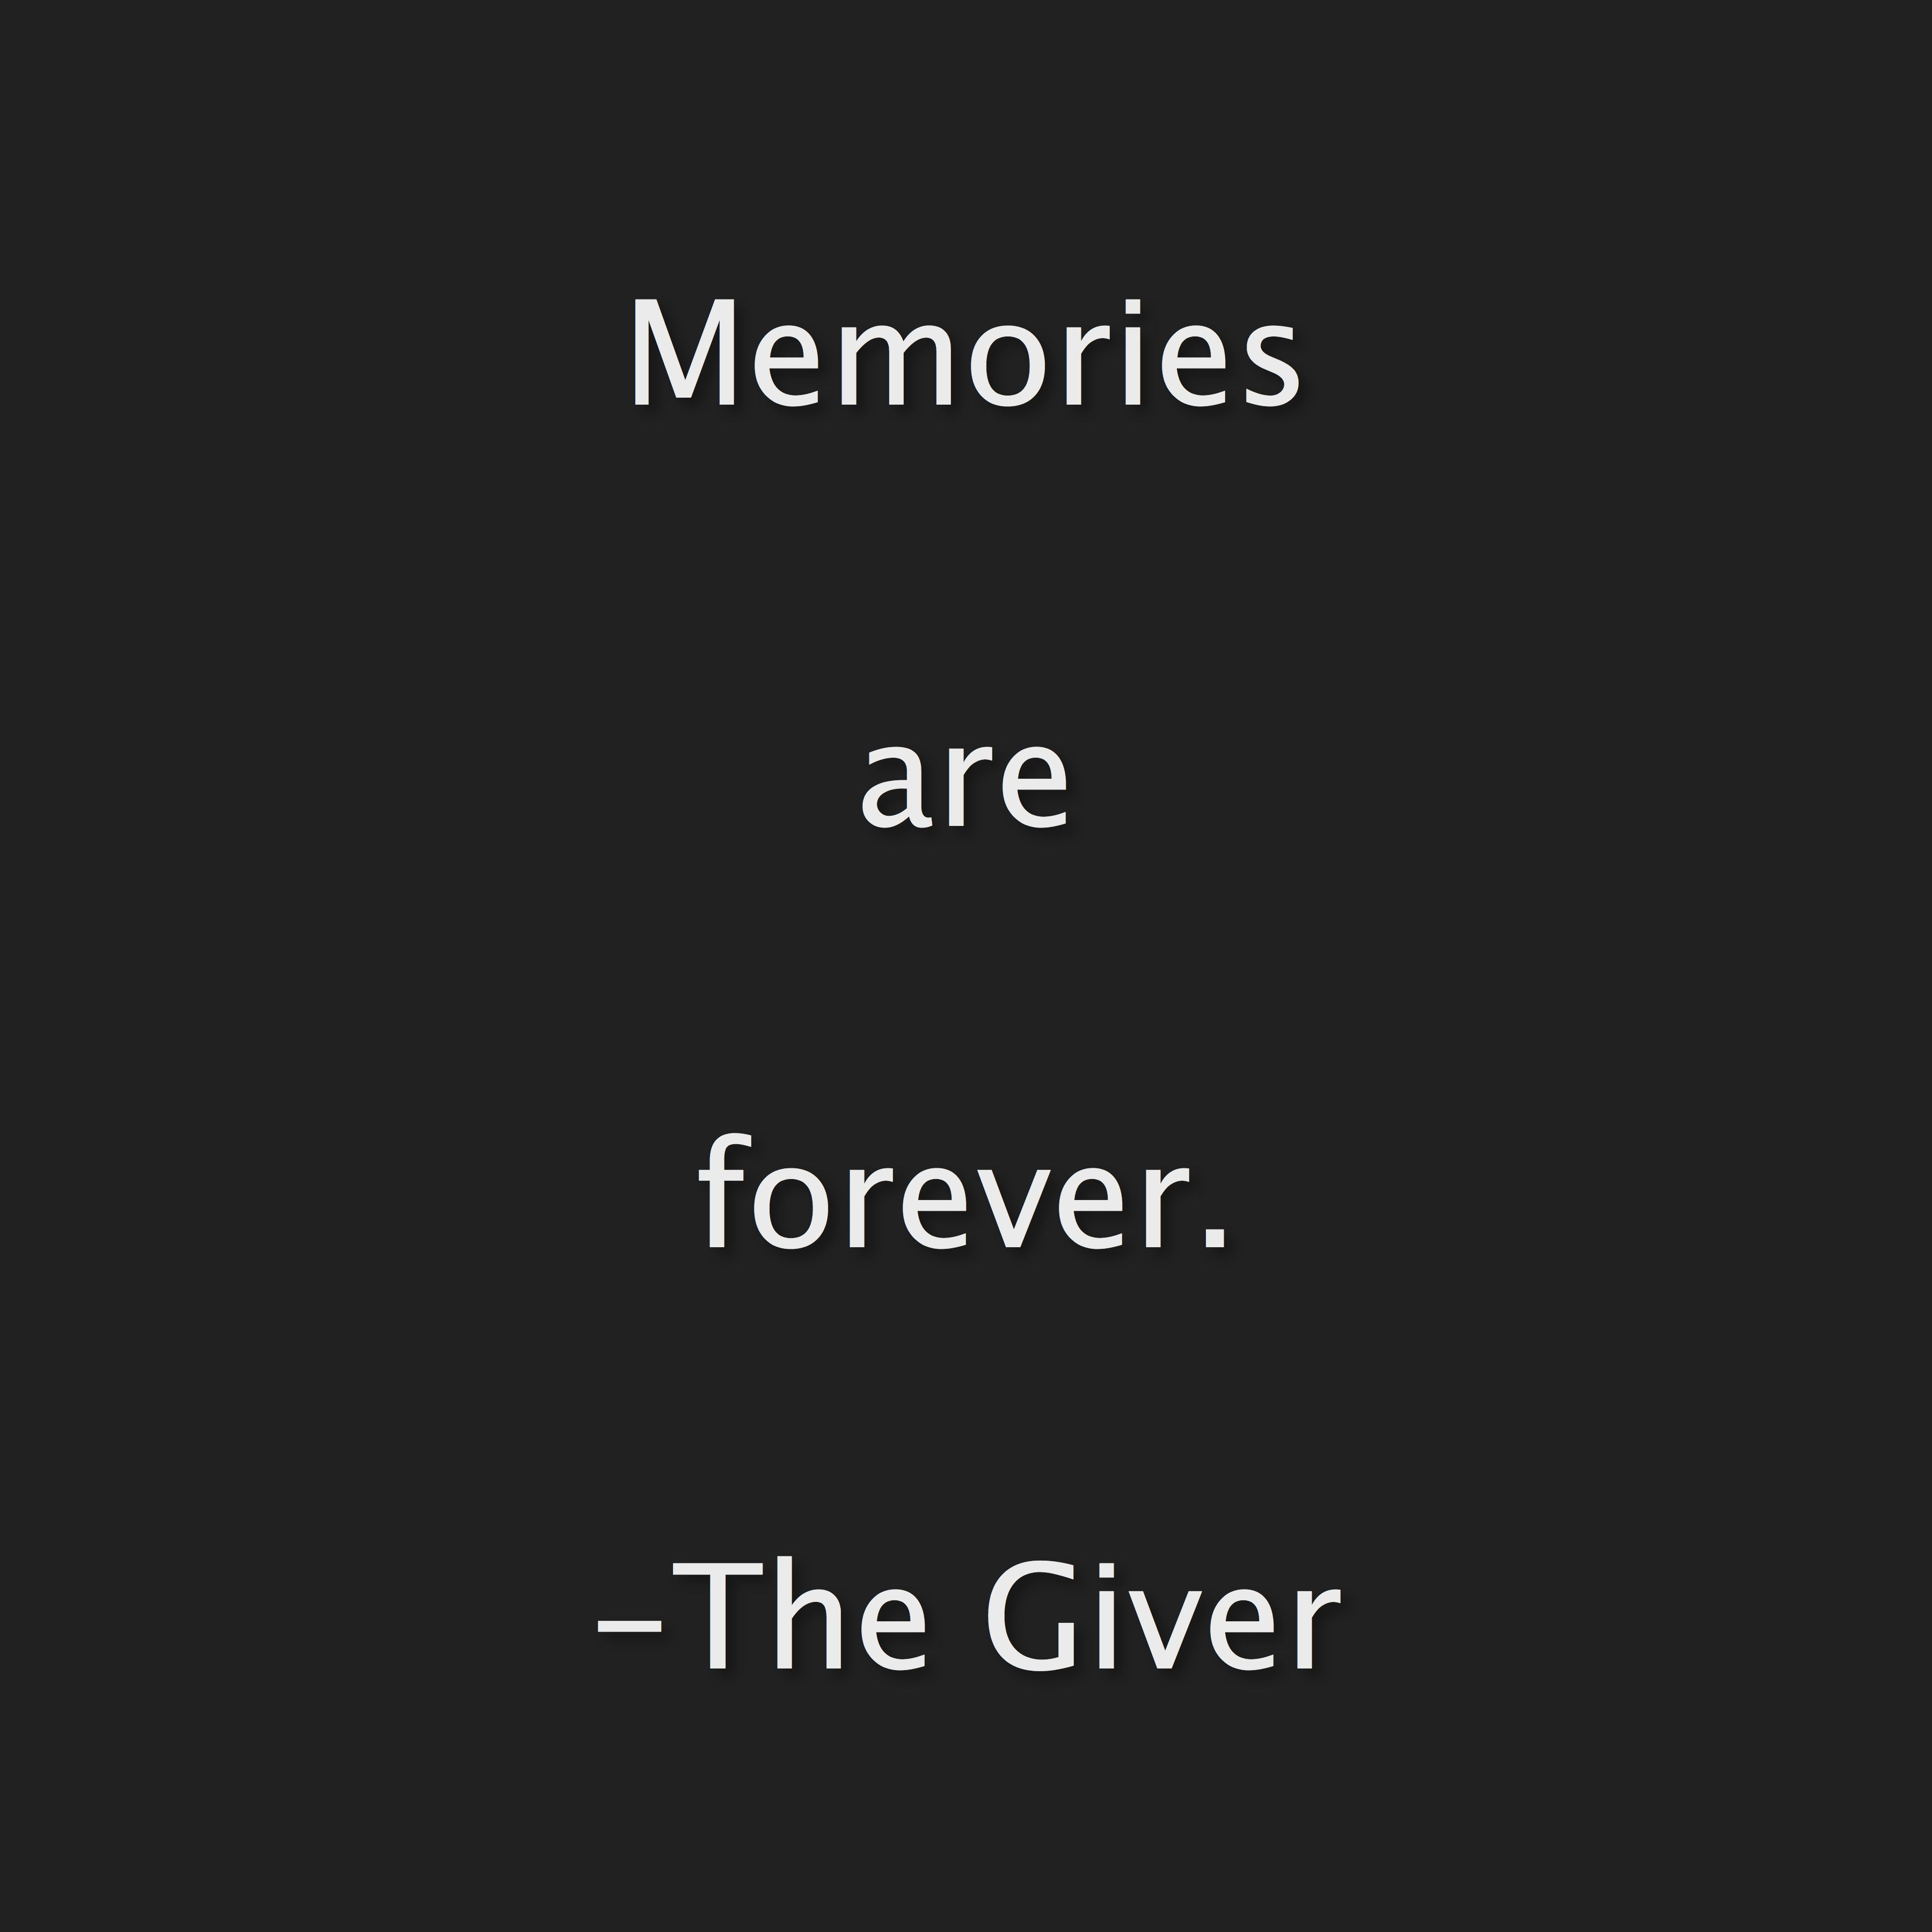 the giver giver quotes memories quotes the giver